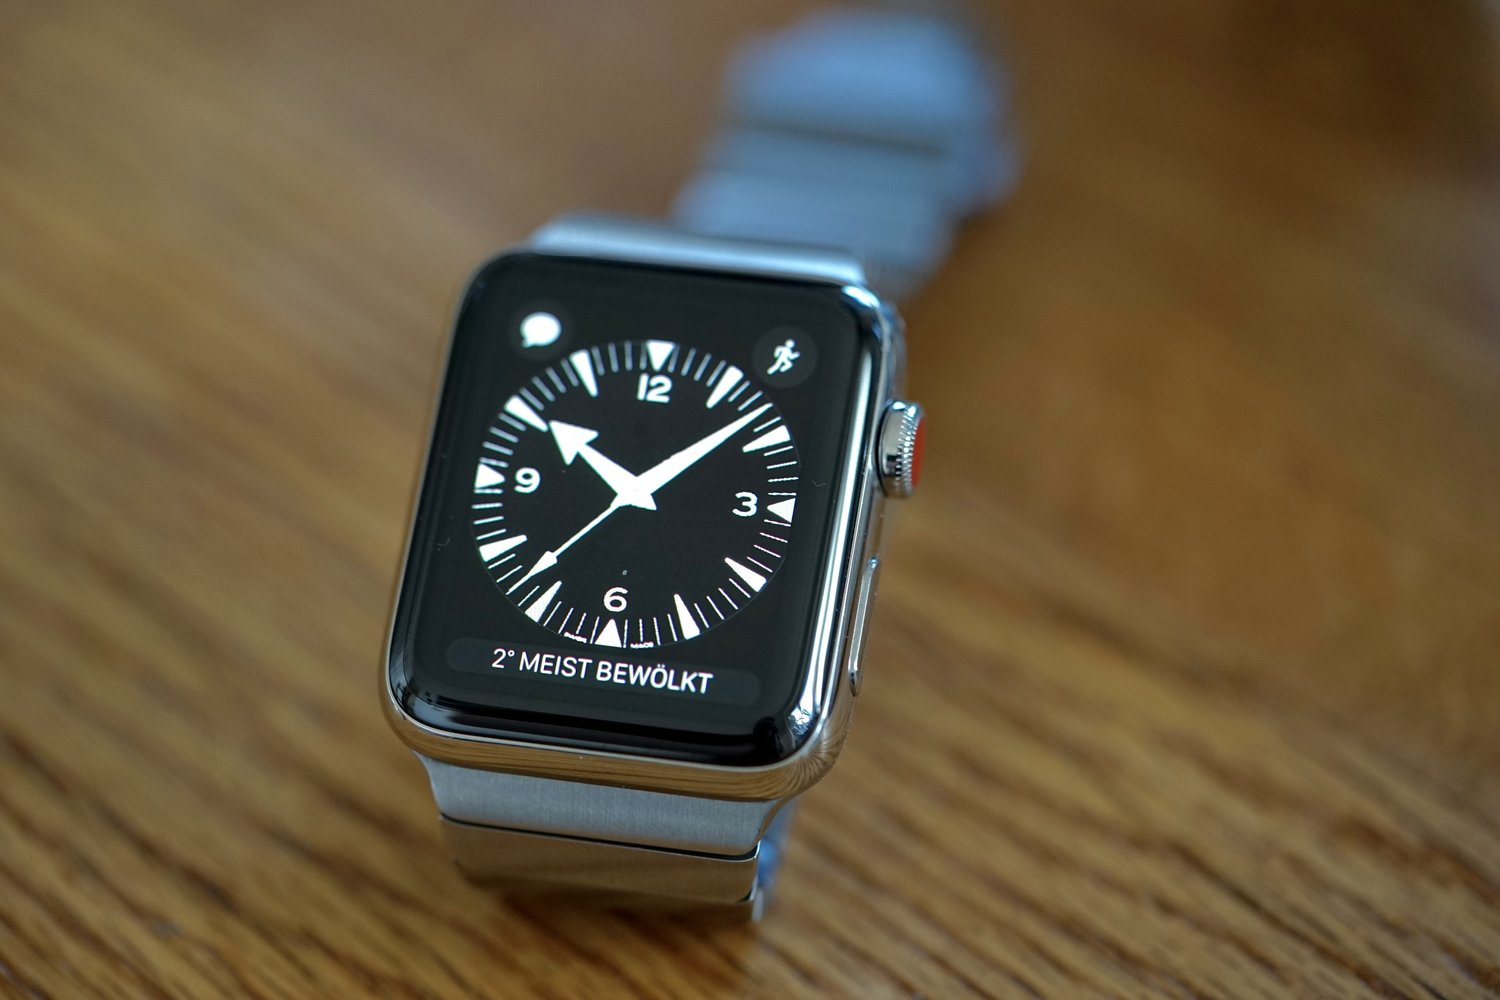 Third Party Watch Faces For Apple Watch About Damn Time Or A Can Of